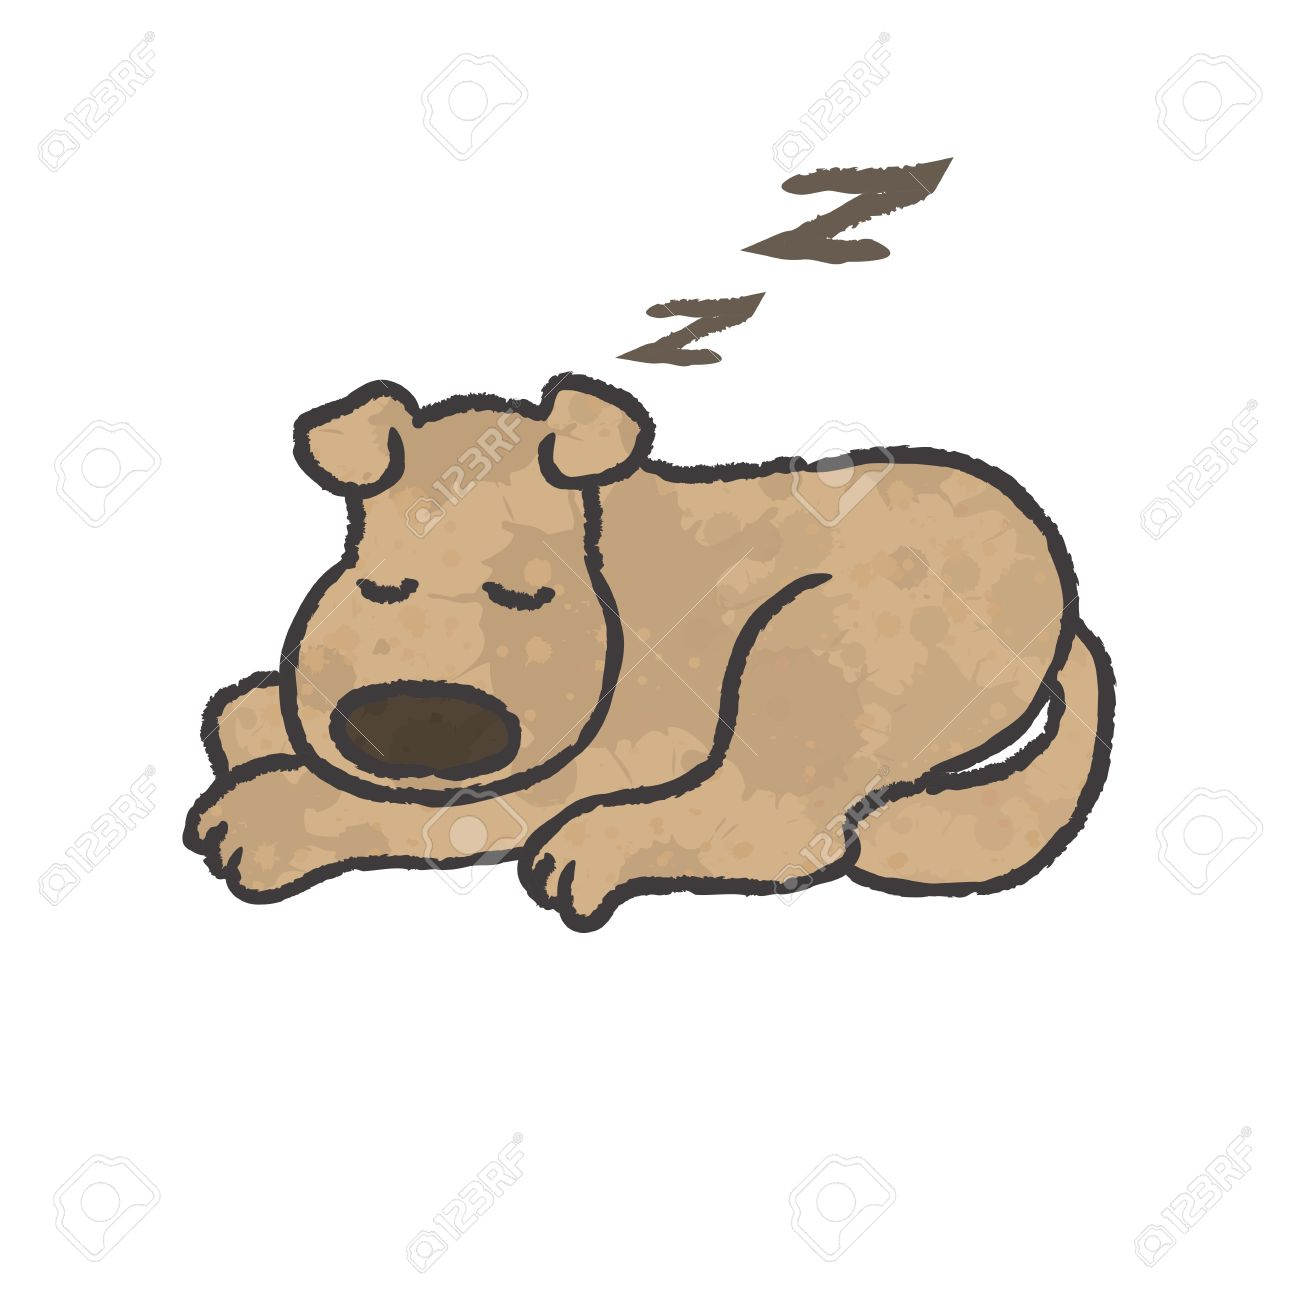 Dog sleeping clipart 9 » Clipart Station.